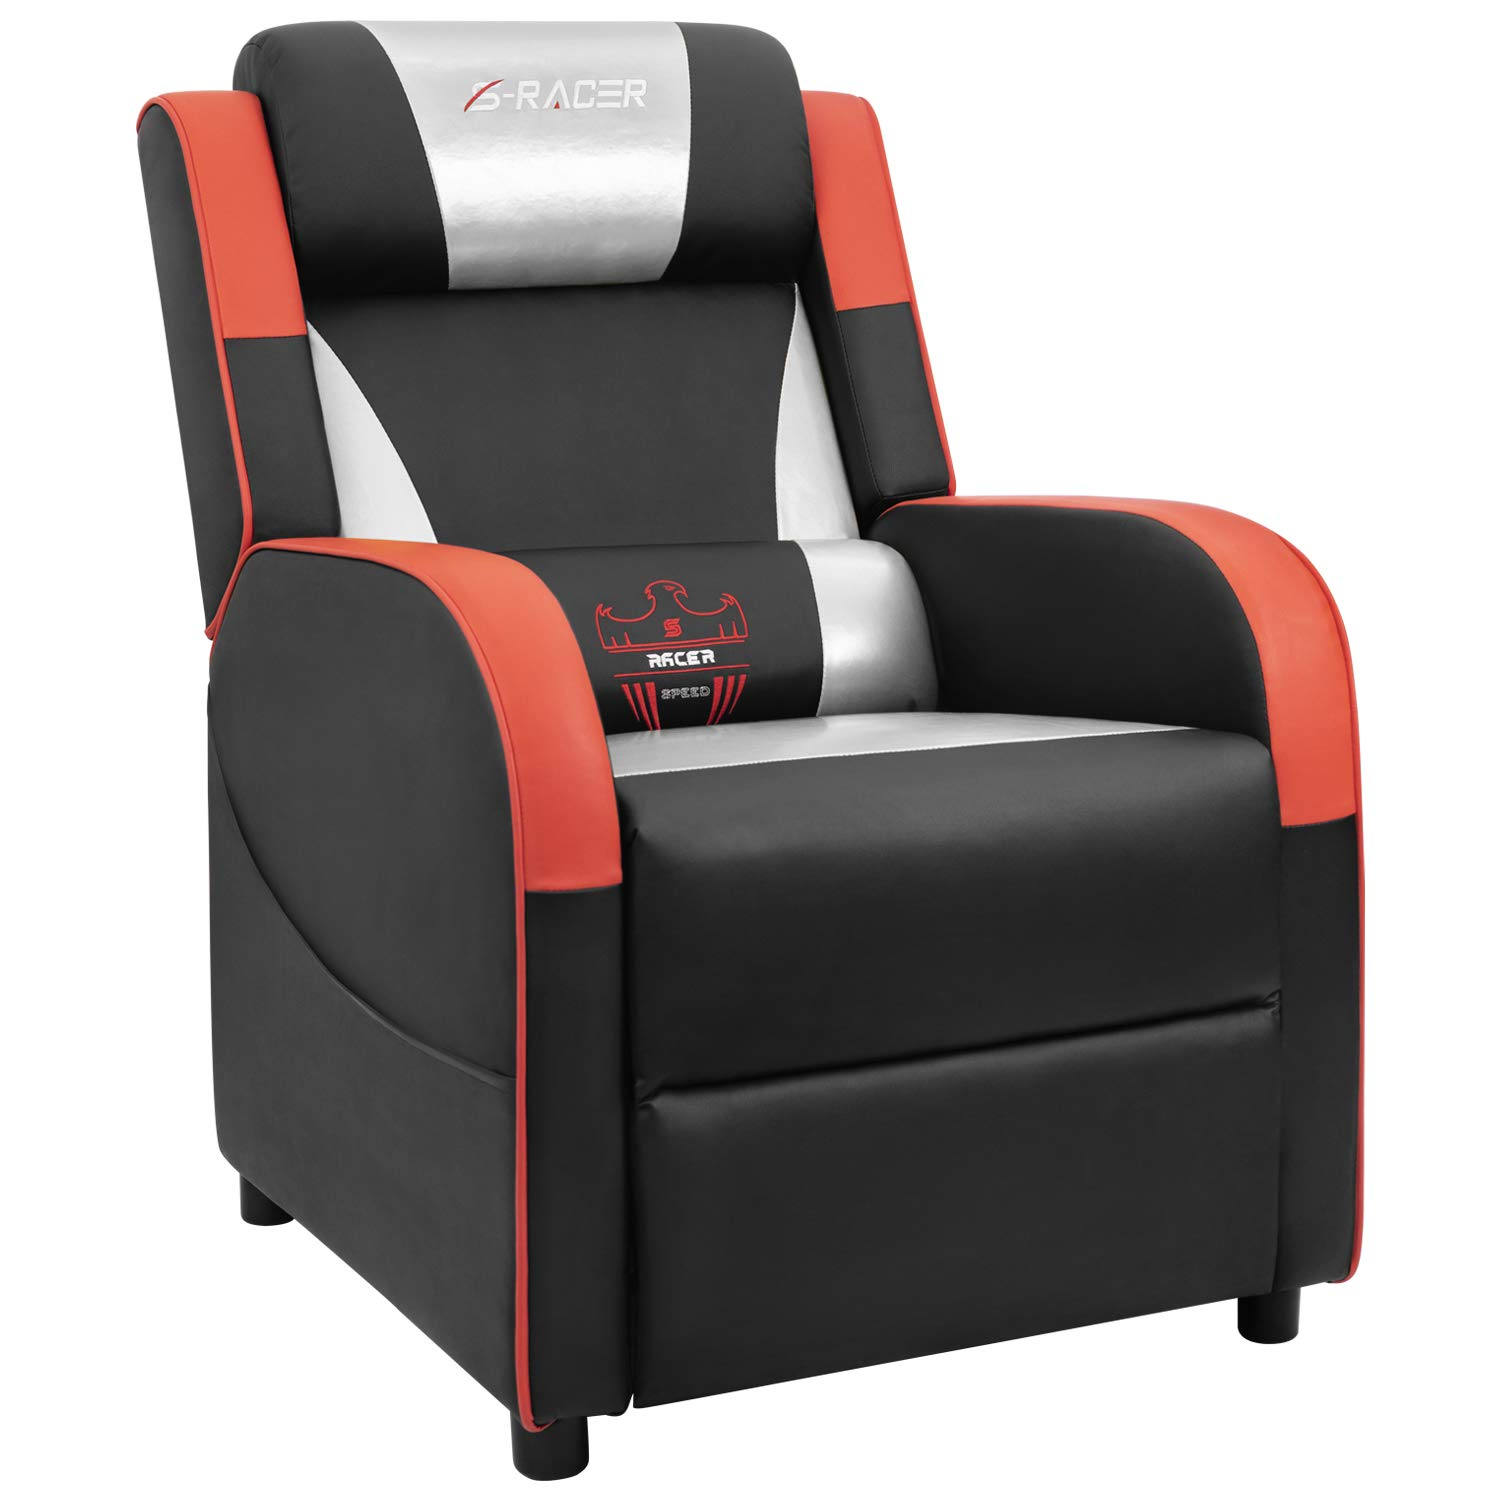 Sofa Gaming Leather Theater Sracer Seatingsilvery Home Recliner Homall Seat Single Room Living Pu Chair OukZXiP